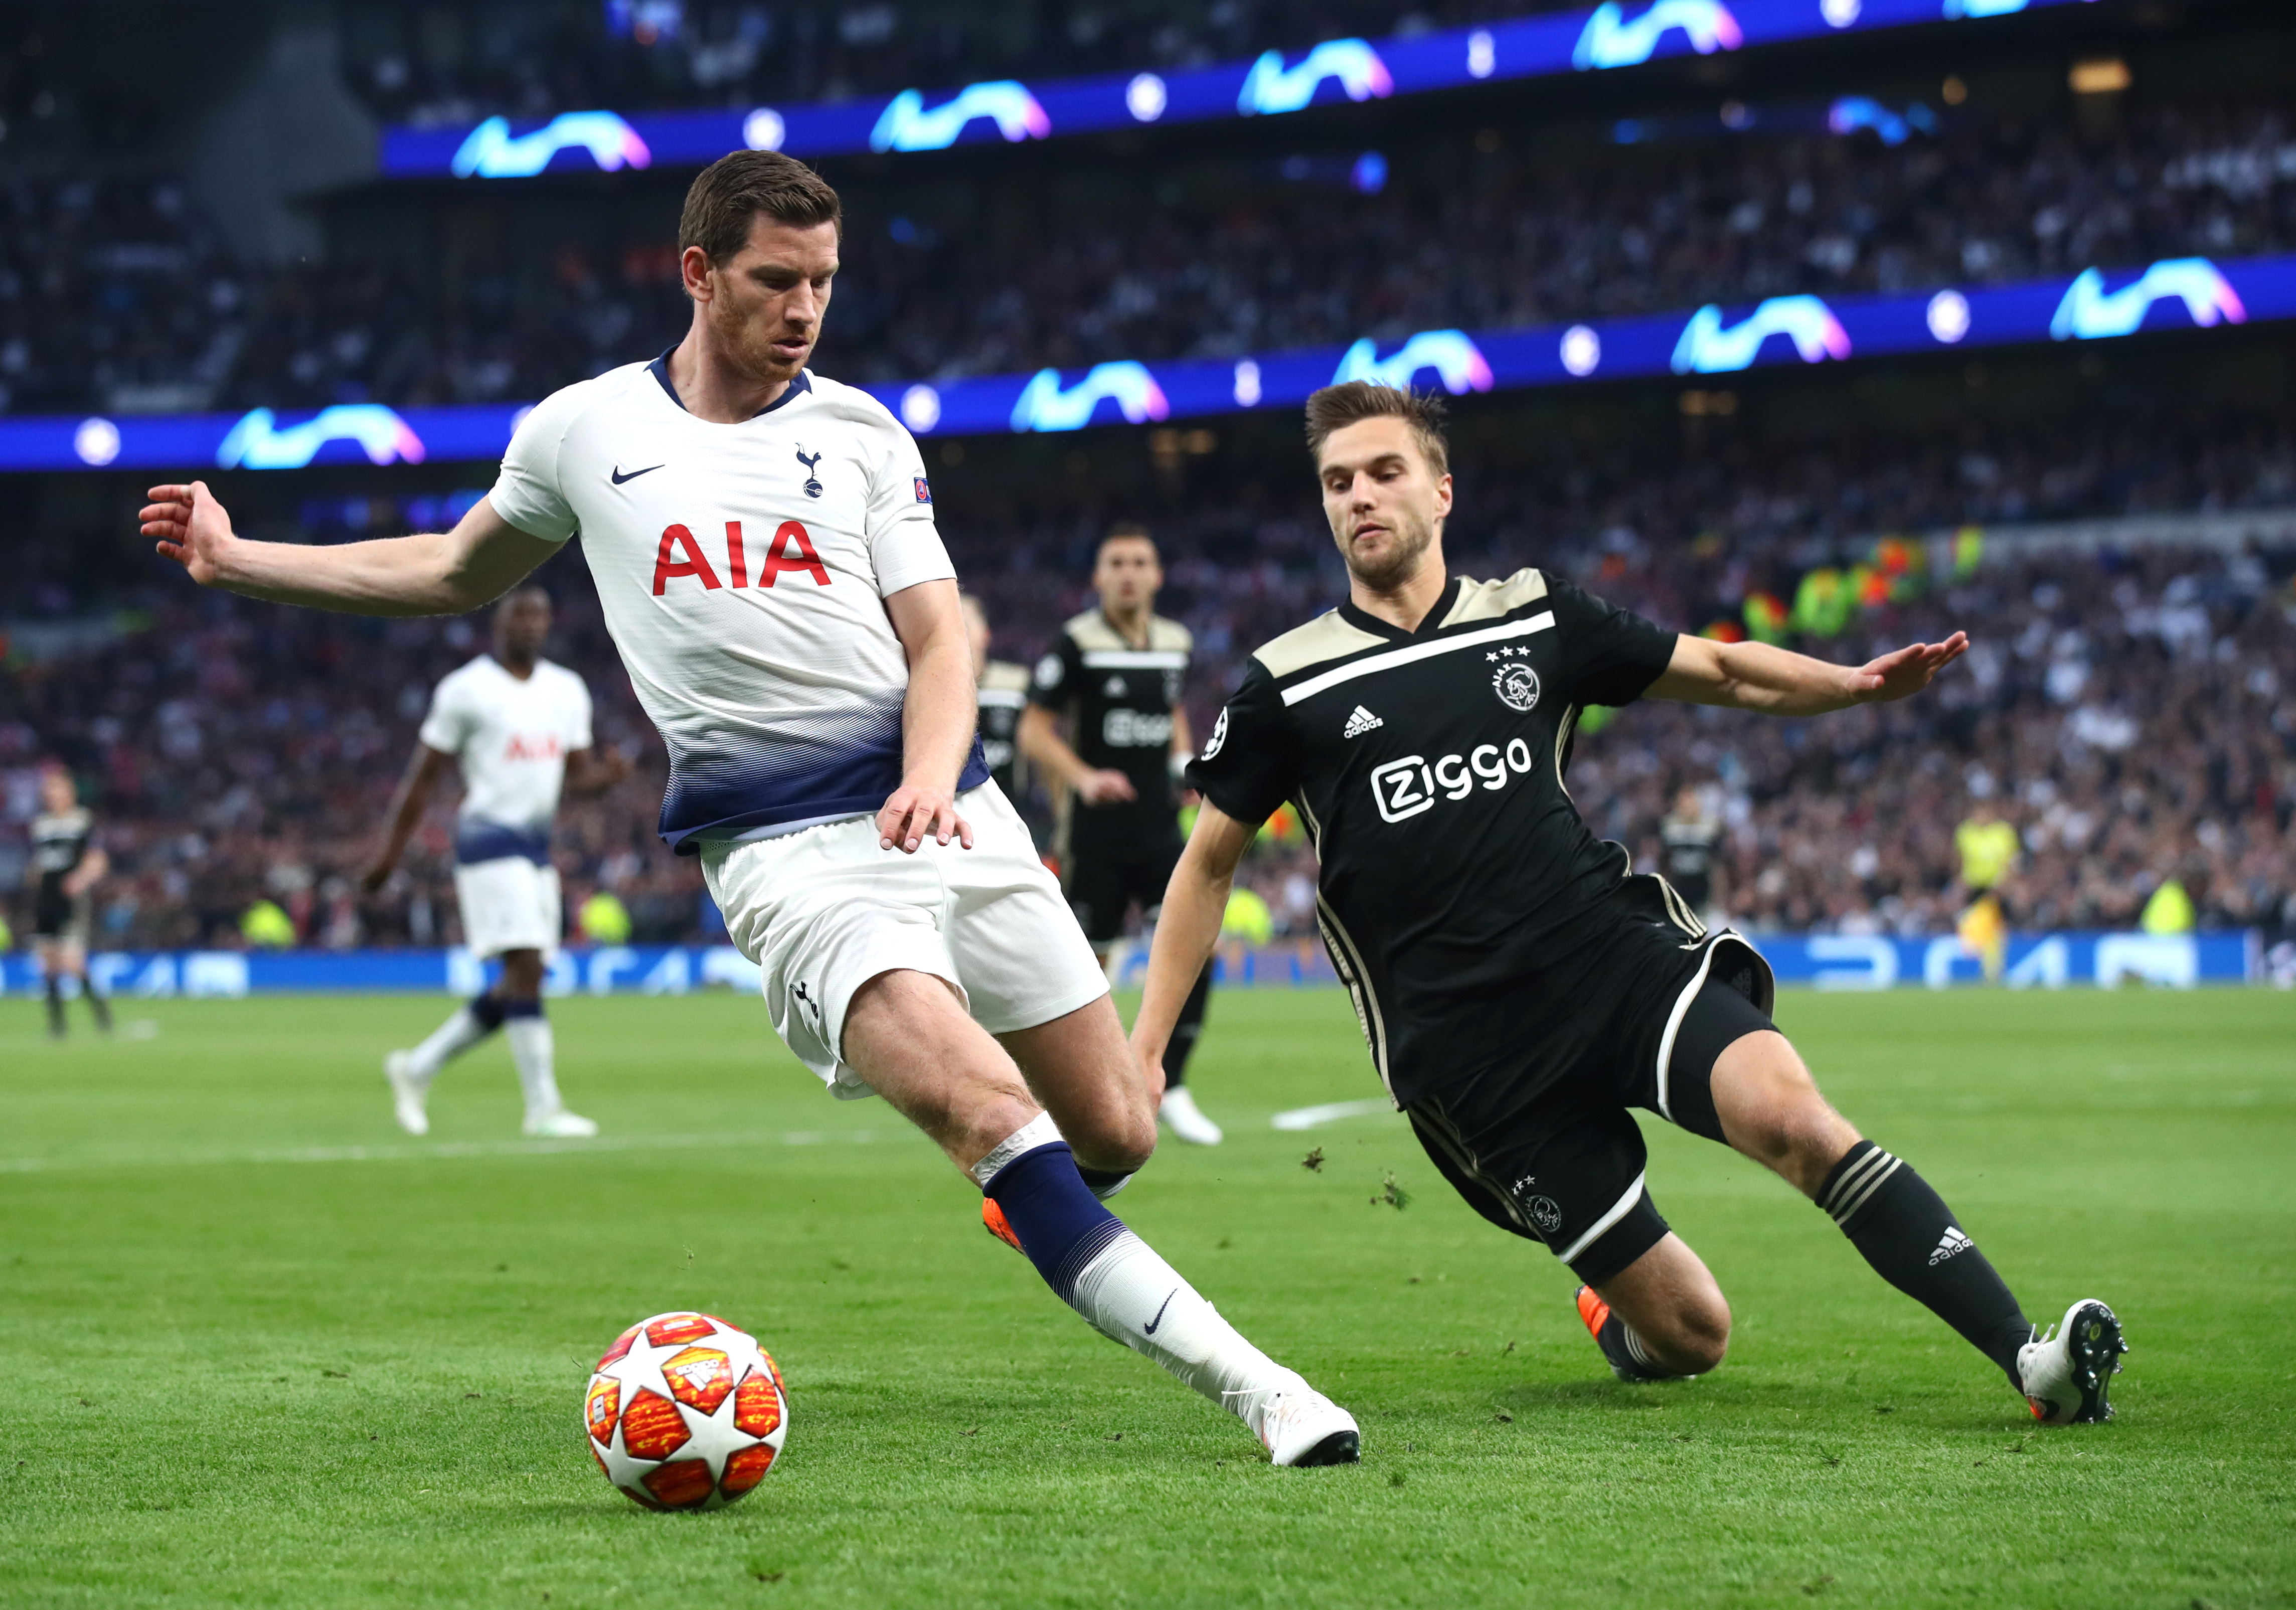 Vertonghen, Aurier could return for Tottenham in Champions League semifinal